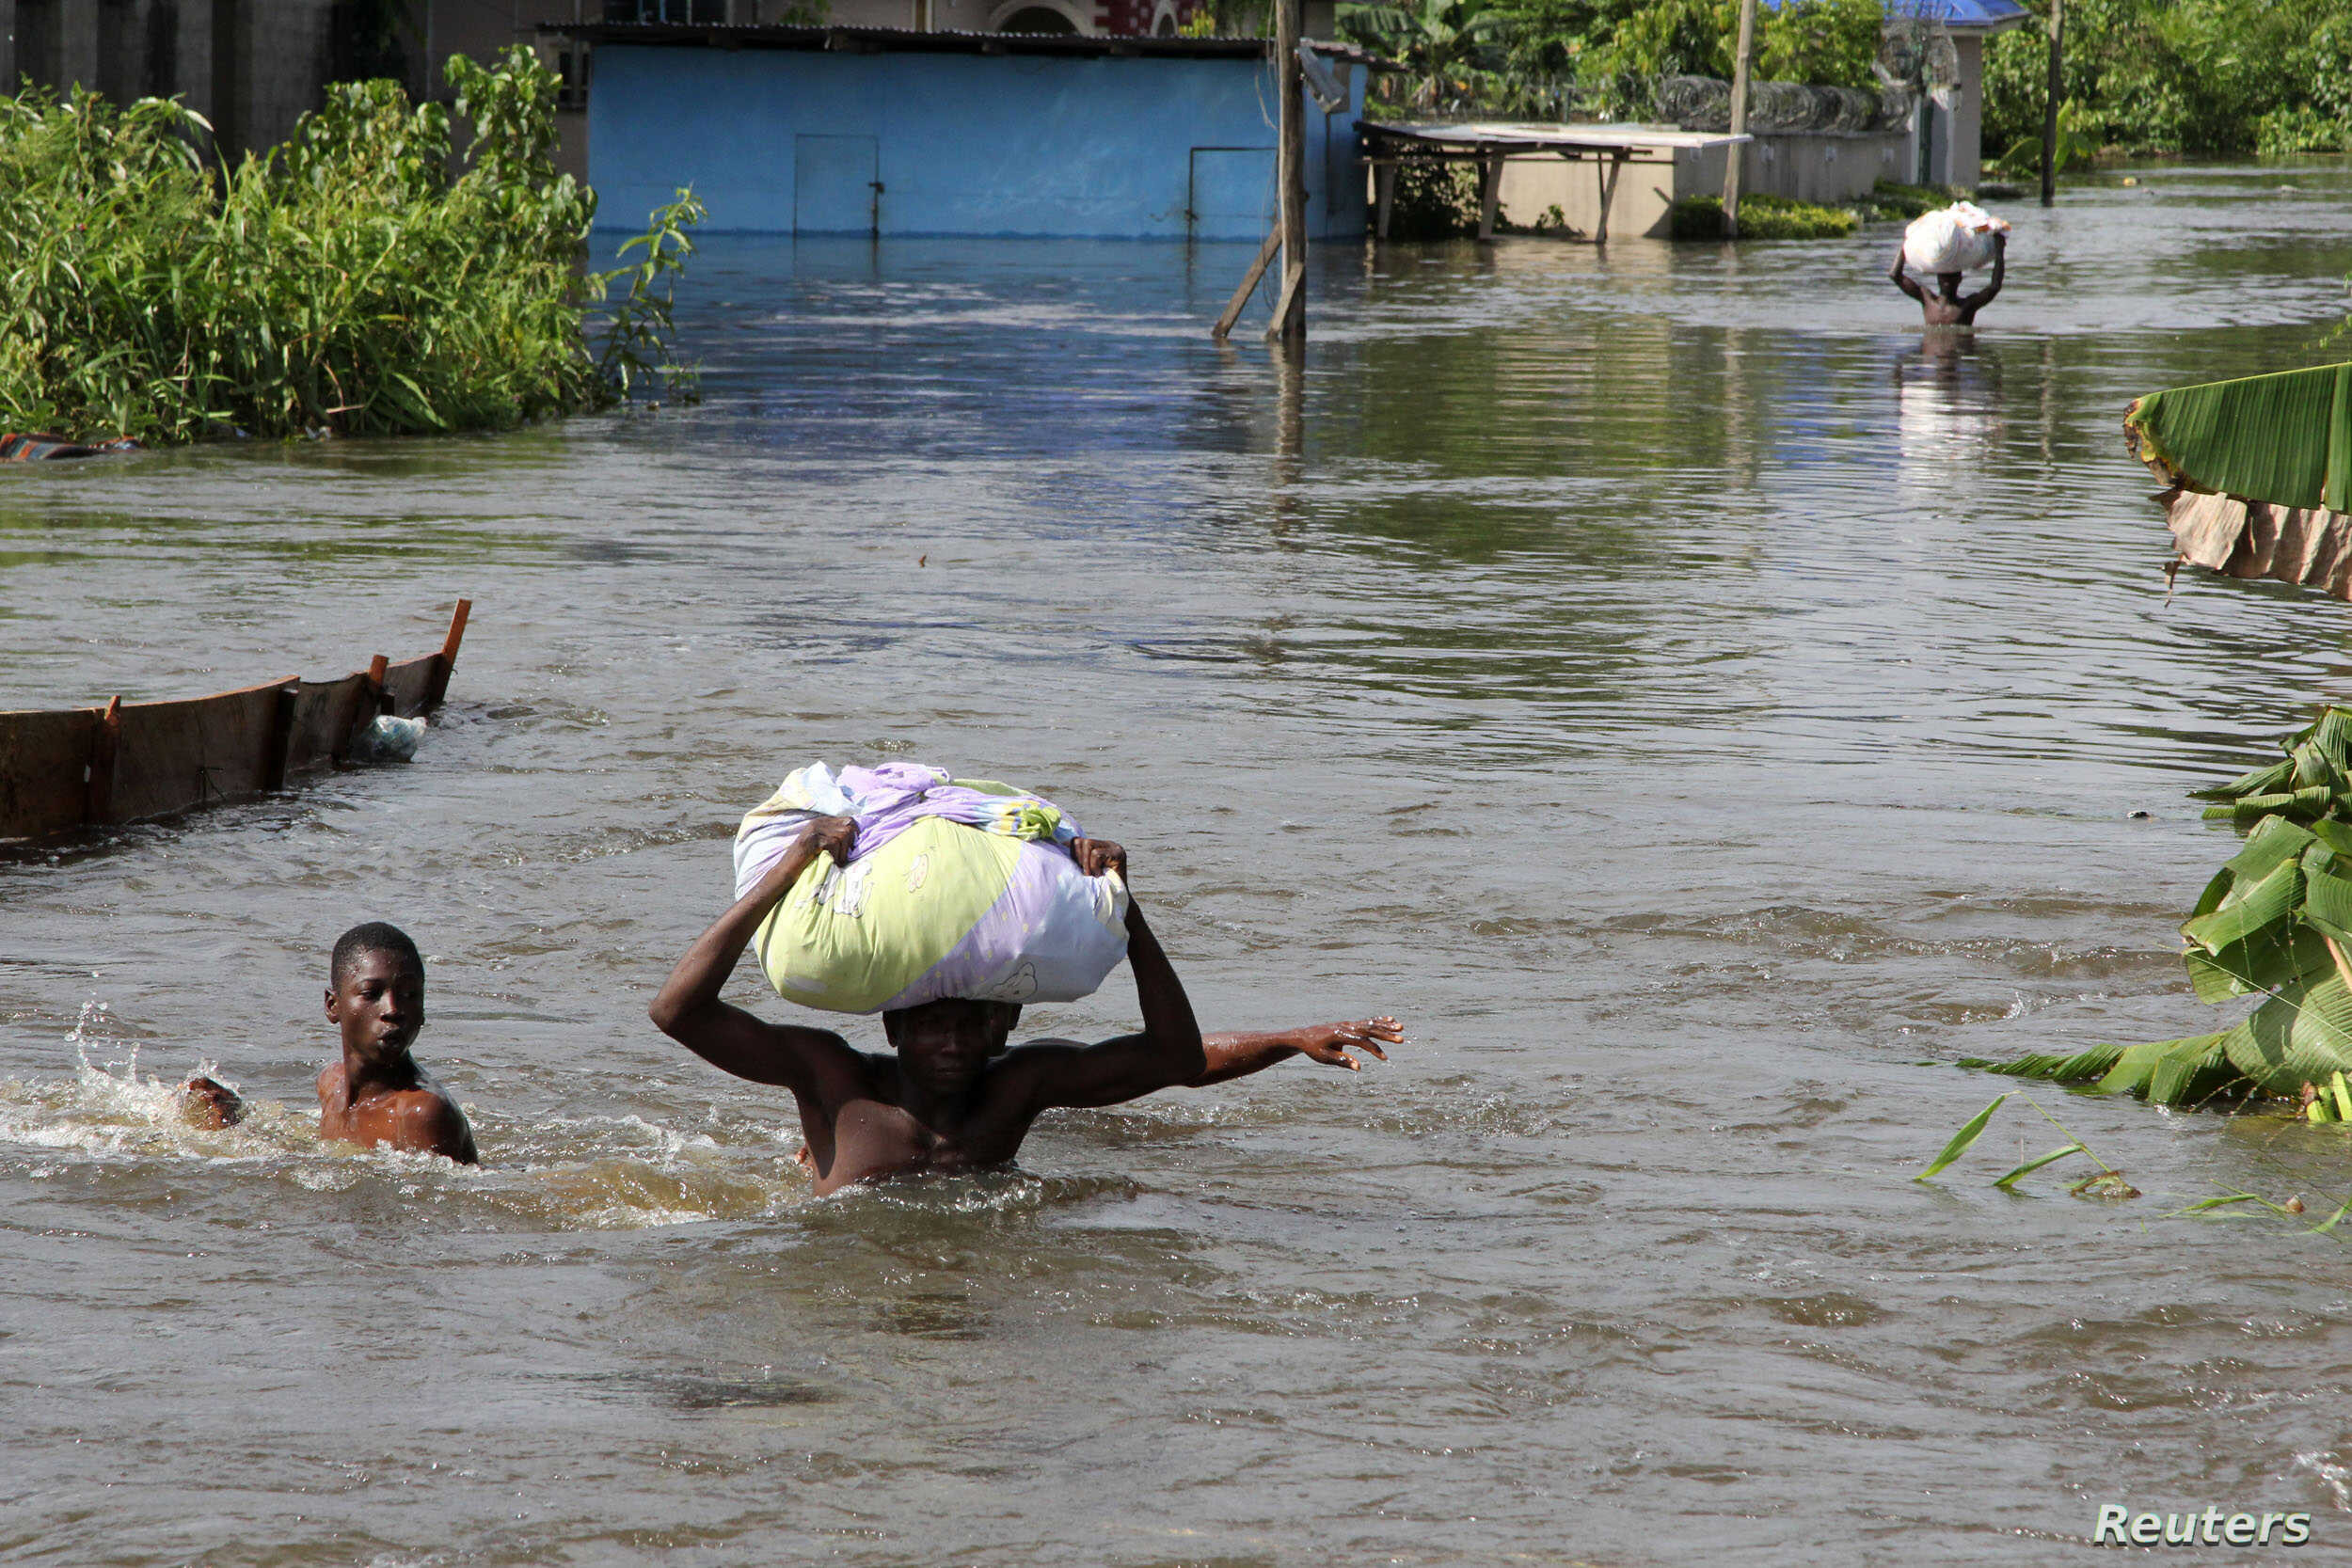 Don't ignore flood alerts - FG warns states